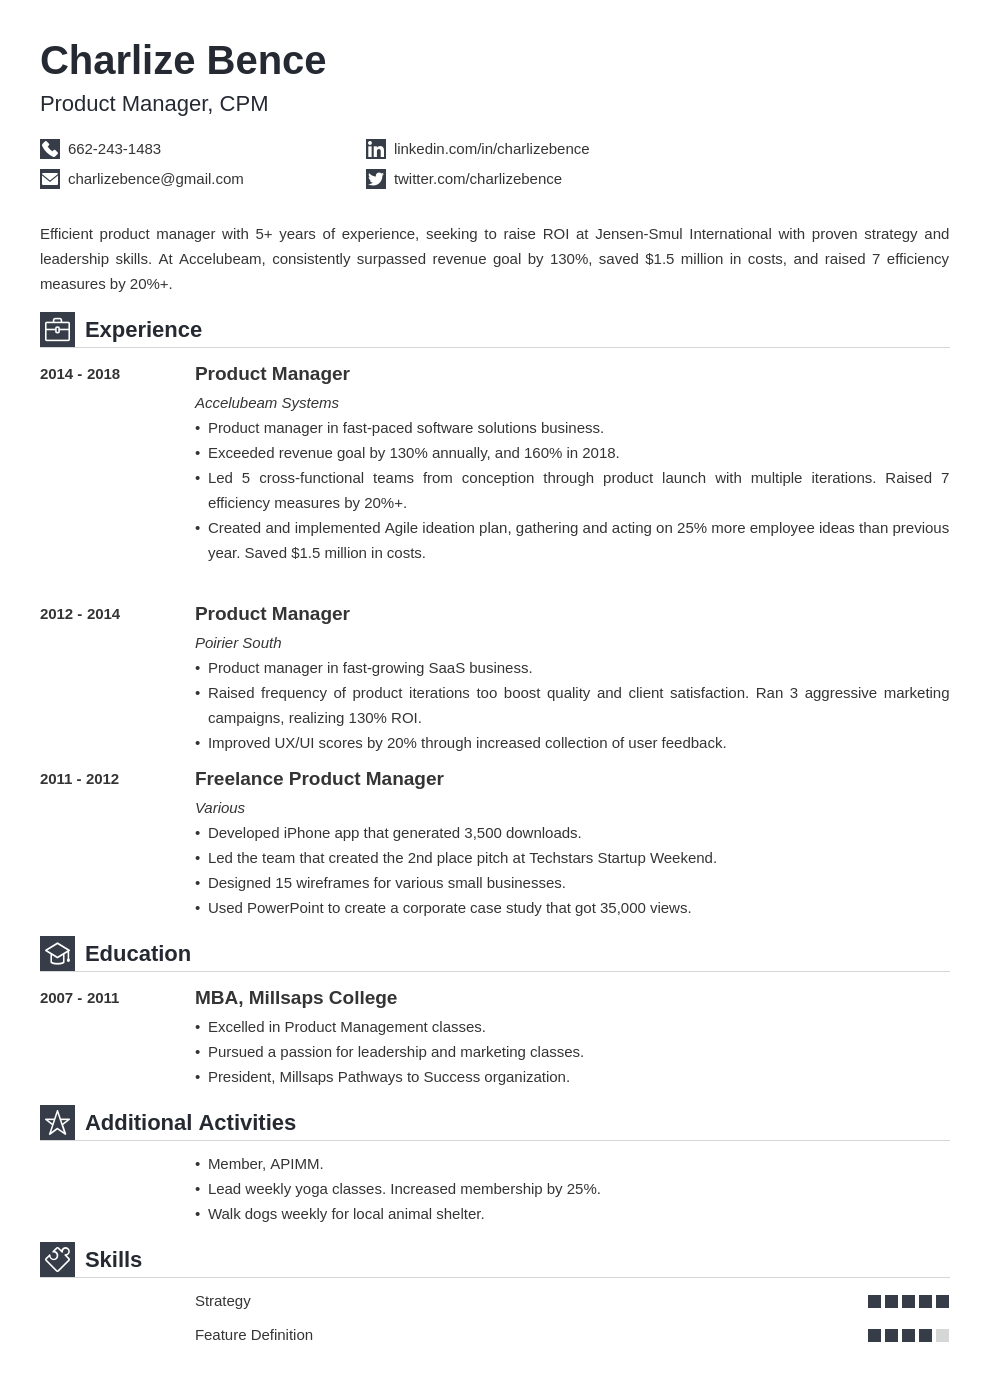 product manager template iconic uk